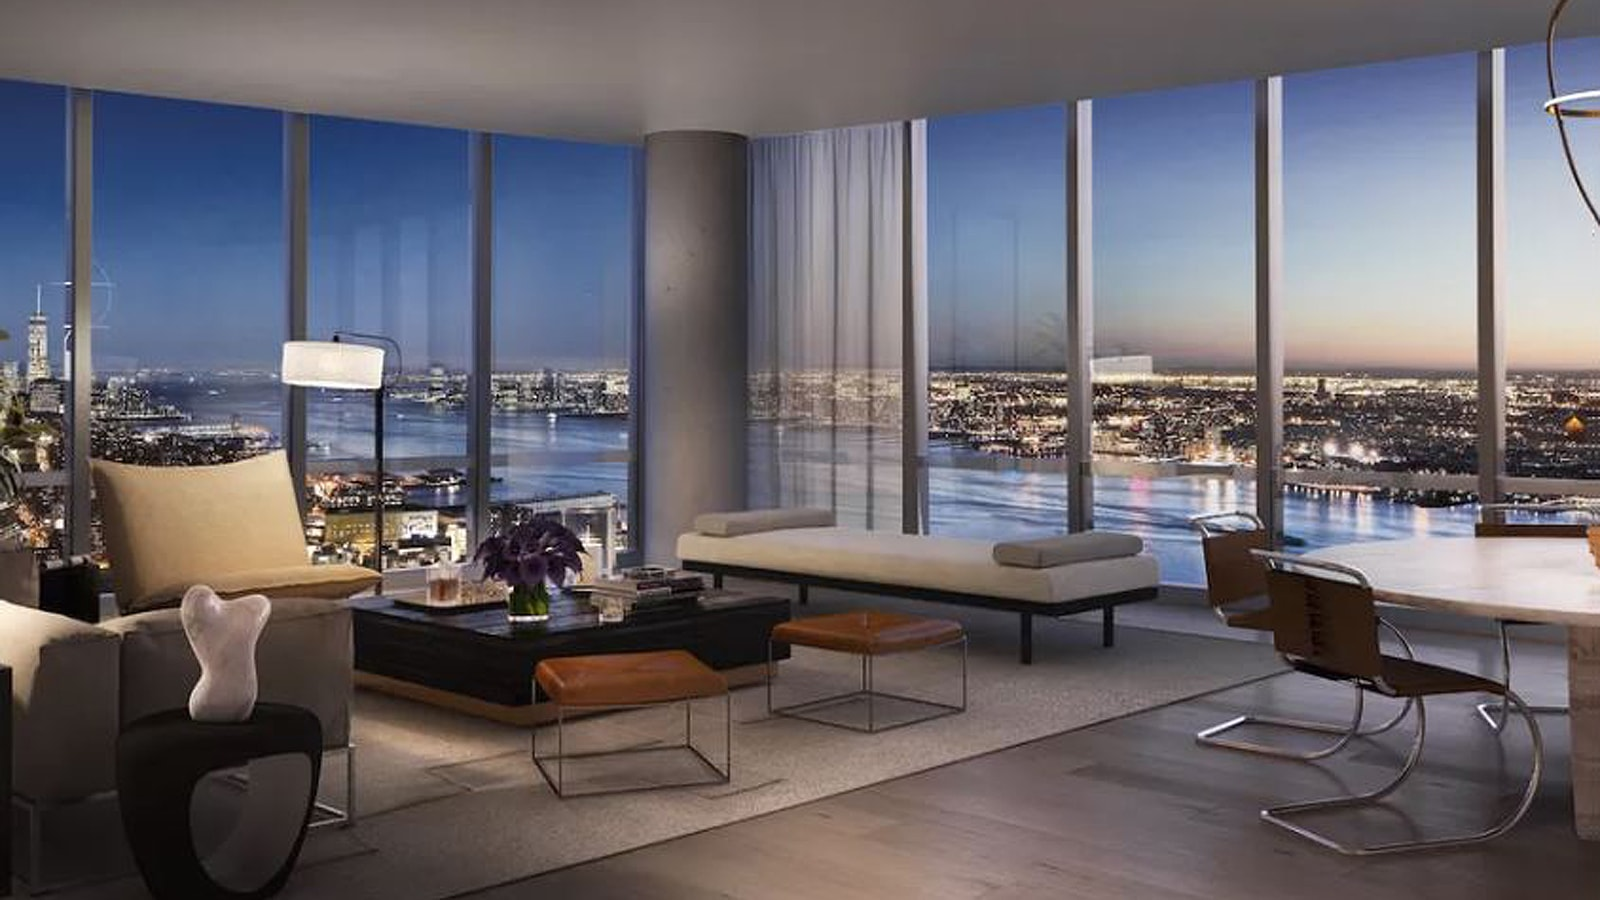 15 Hudson Yards At 501 West 30th Street In Chelsea